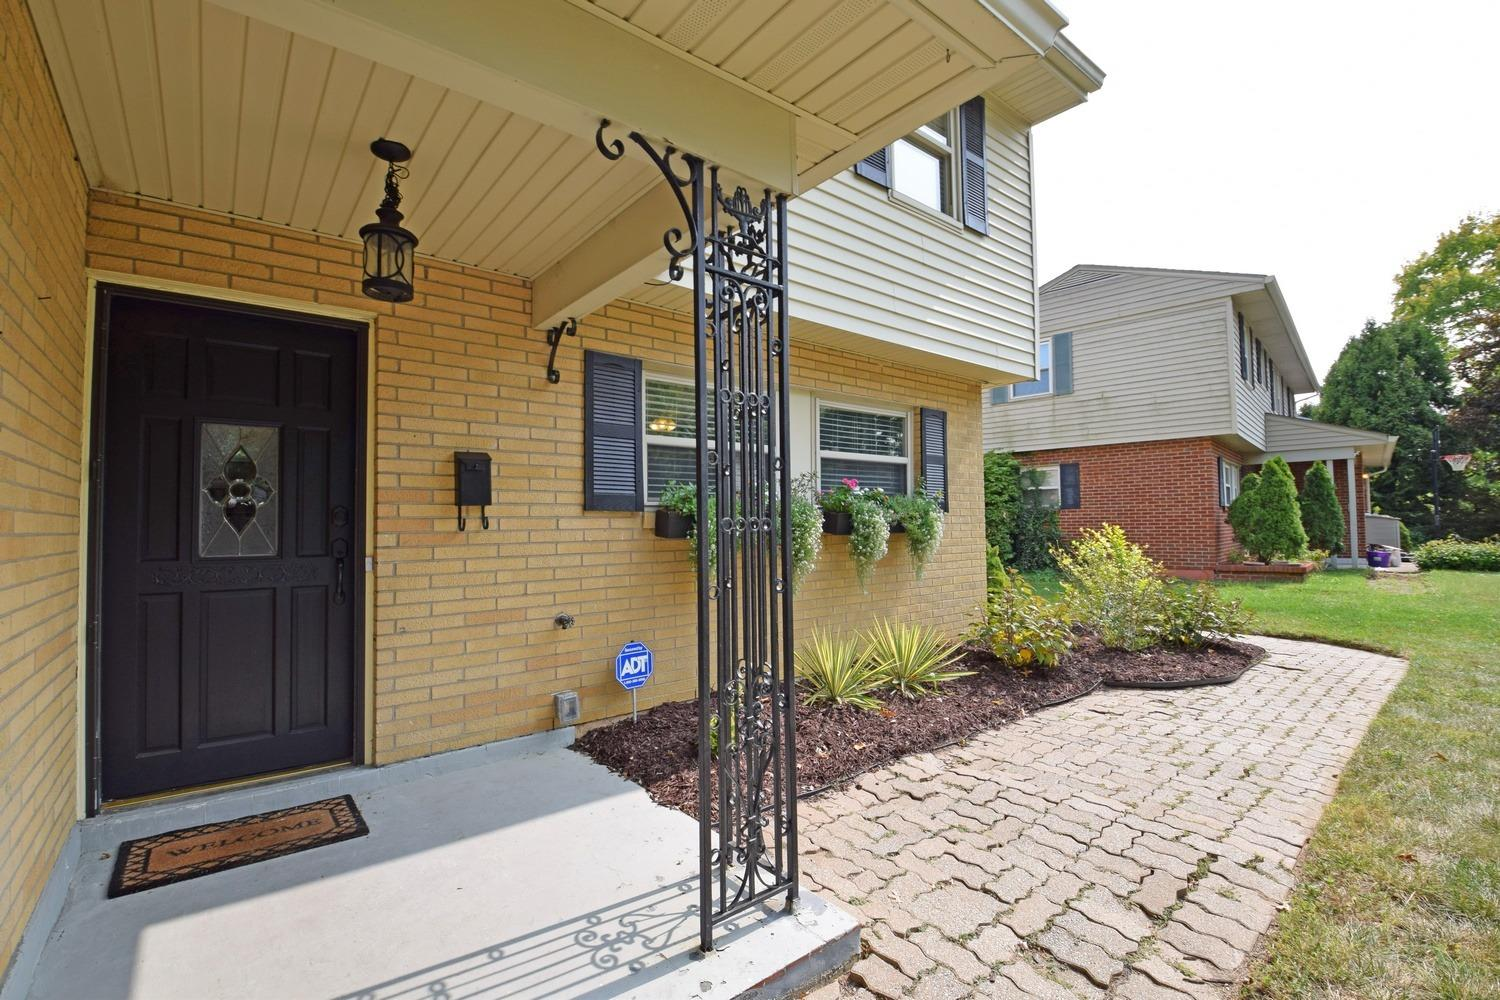 Photo 3 for 161 Junedale Dr Greenhills, OH 45218